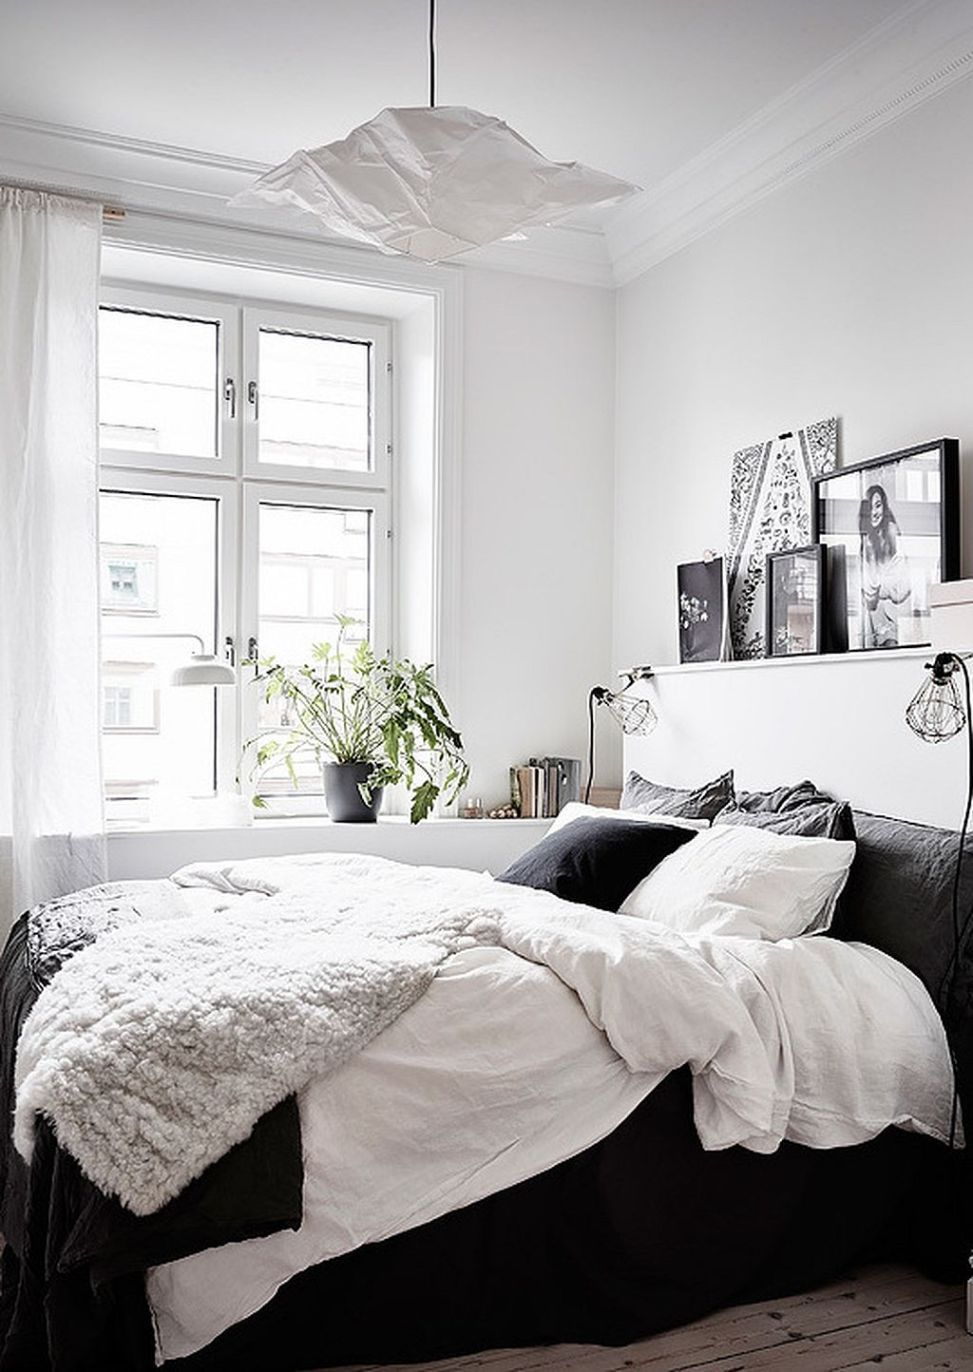 65 cute teenage girl bedroom ideas that will blow your on cozy minimalist bedroom decorating ideas id=88940